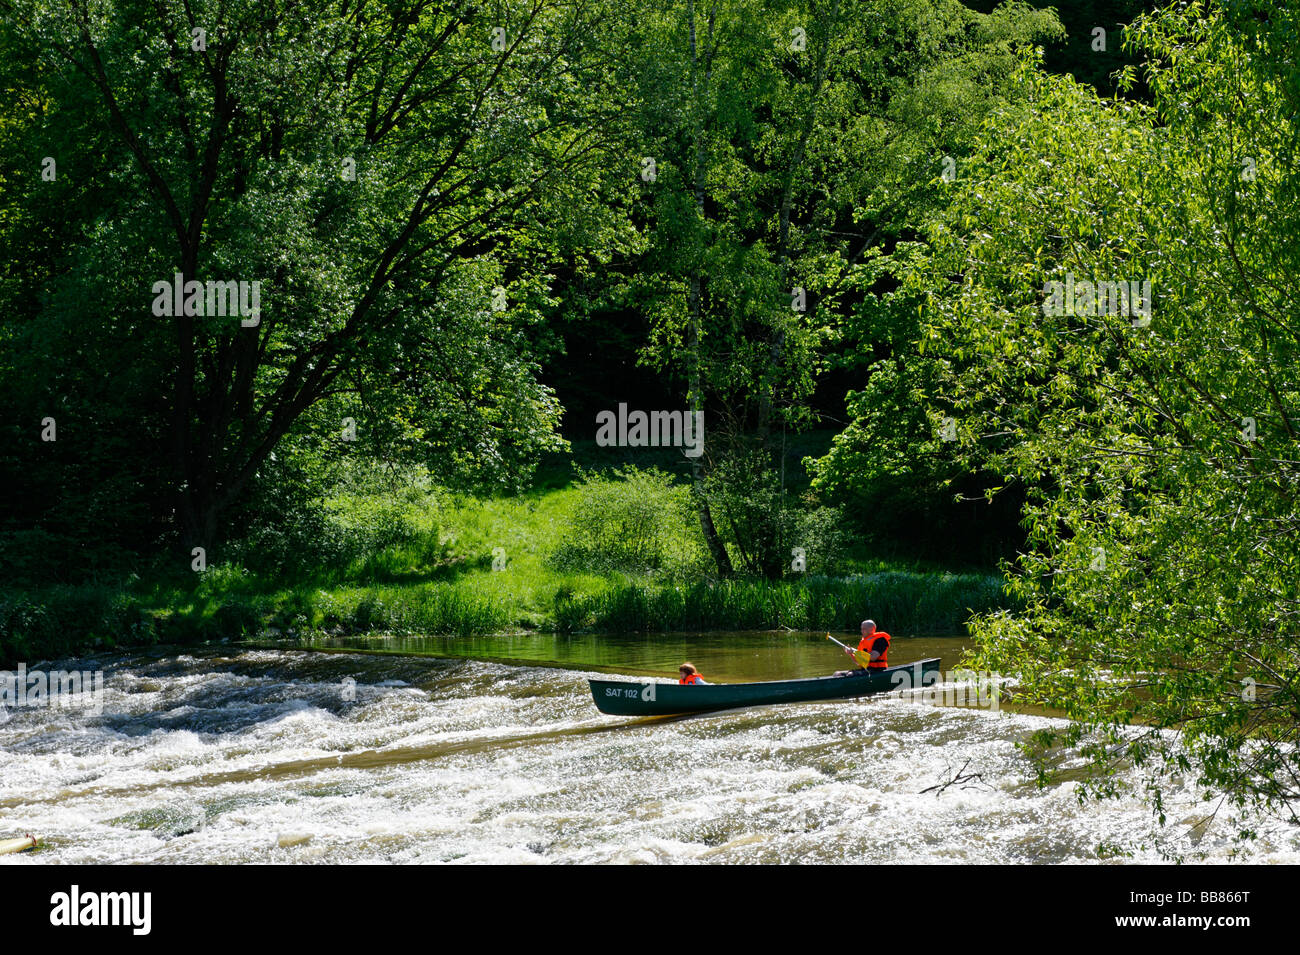 Canoe tour, canoe trip near Dollnstein in the Altmuehltal valley, Upper Bavaria, Germany, Europe - Stock Image